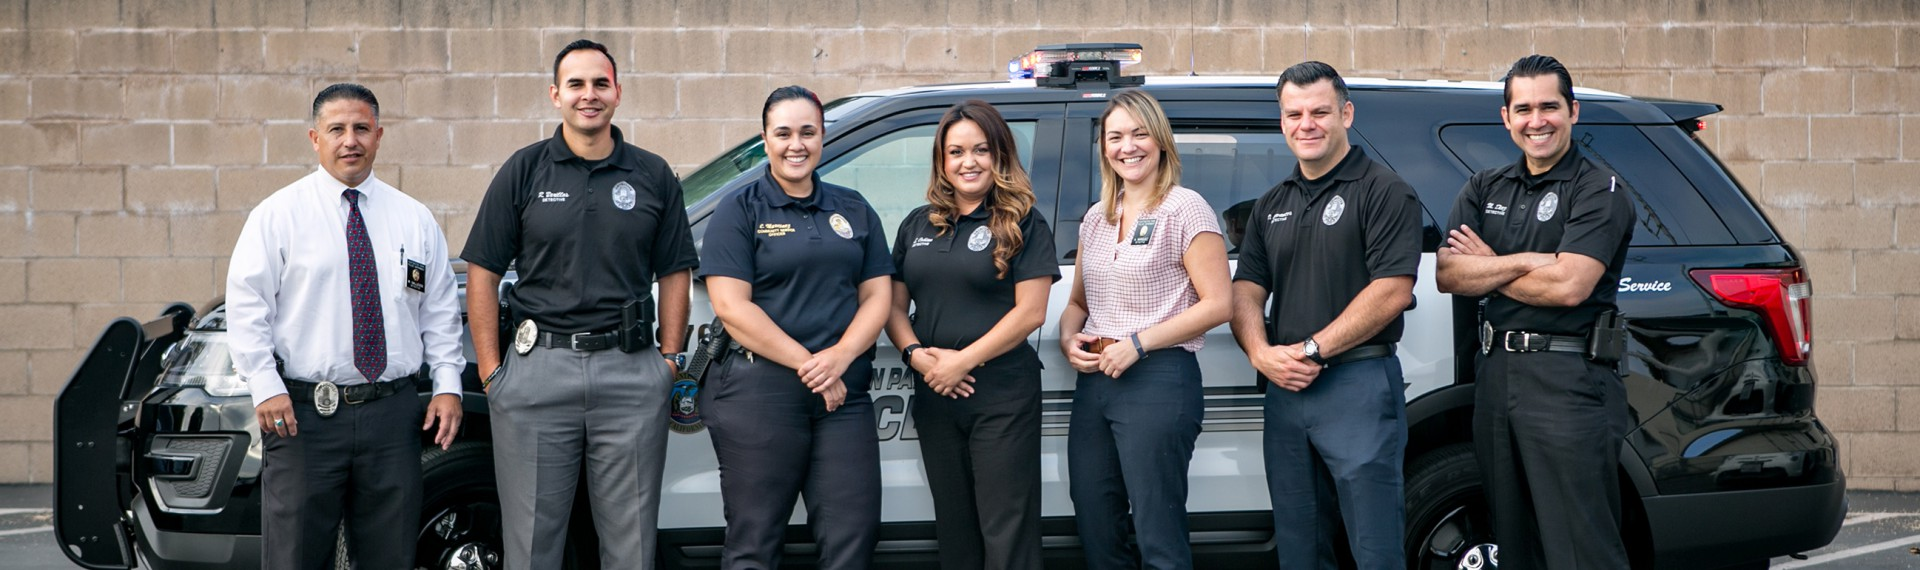 About HPPD - Huntington Park Police Department